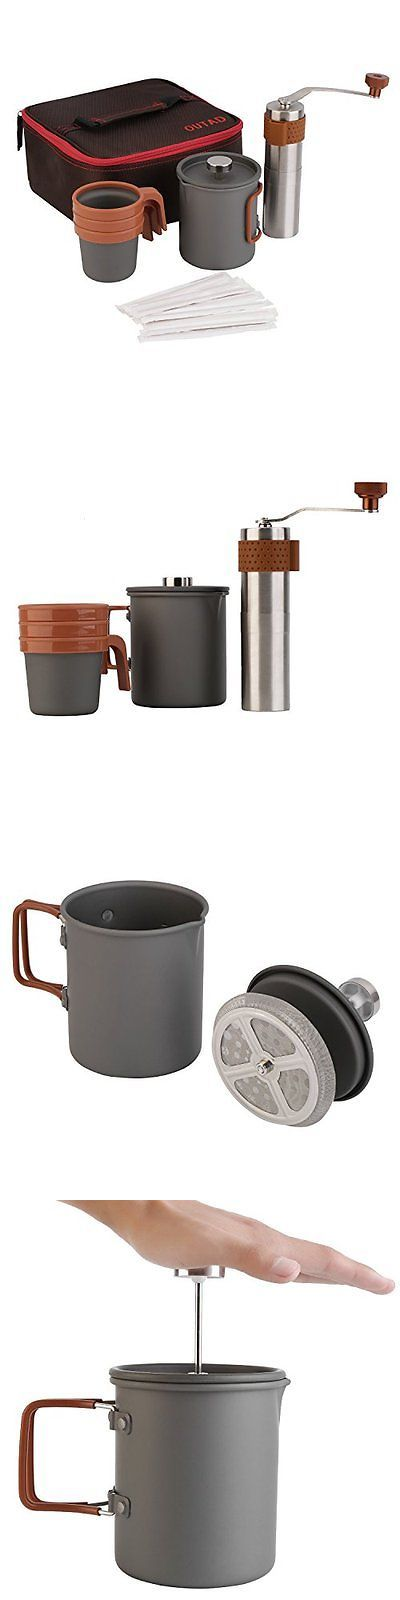 French Presses 98851: Outad Portable Coffee Maker Set 20Fl.Oz French Press Coffee Maker | Manual | 3 X -> BUY IT NOW ONLY: $54.52 on eBay!